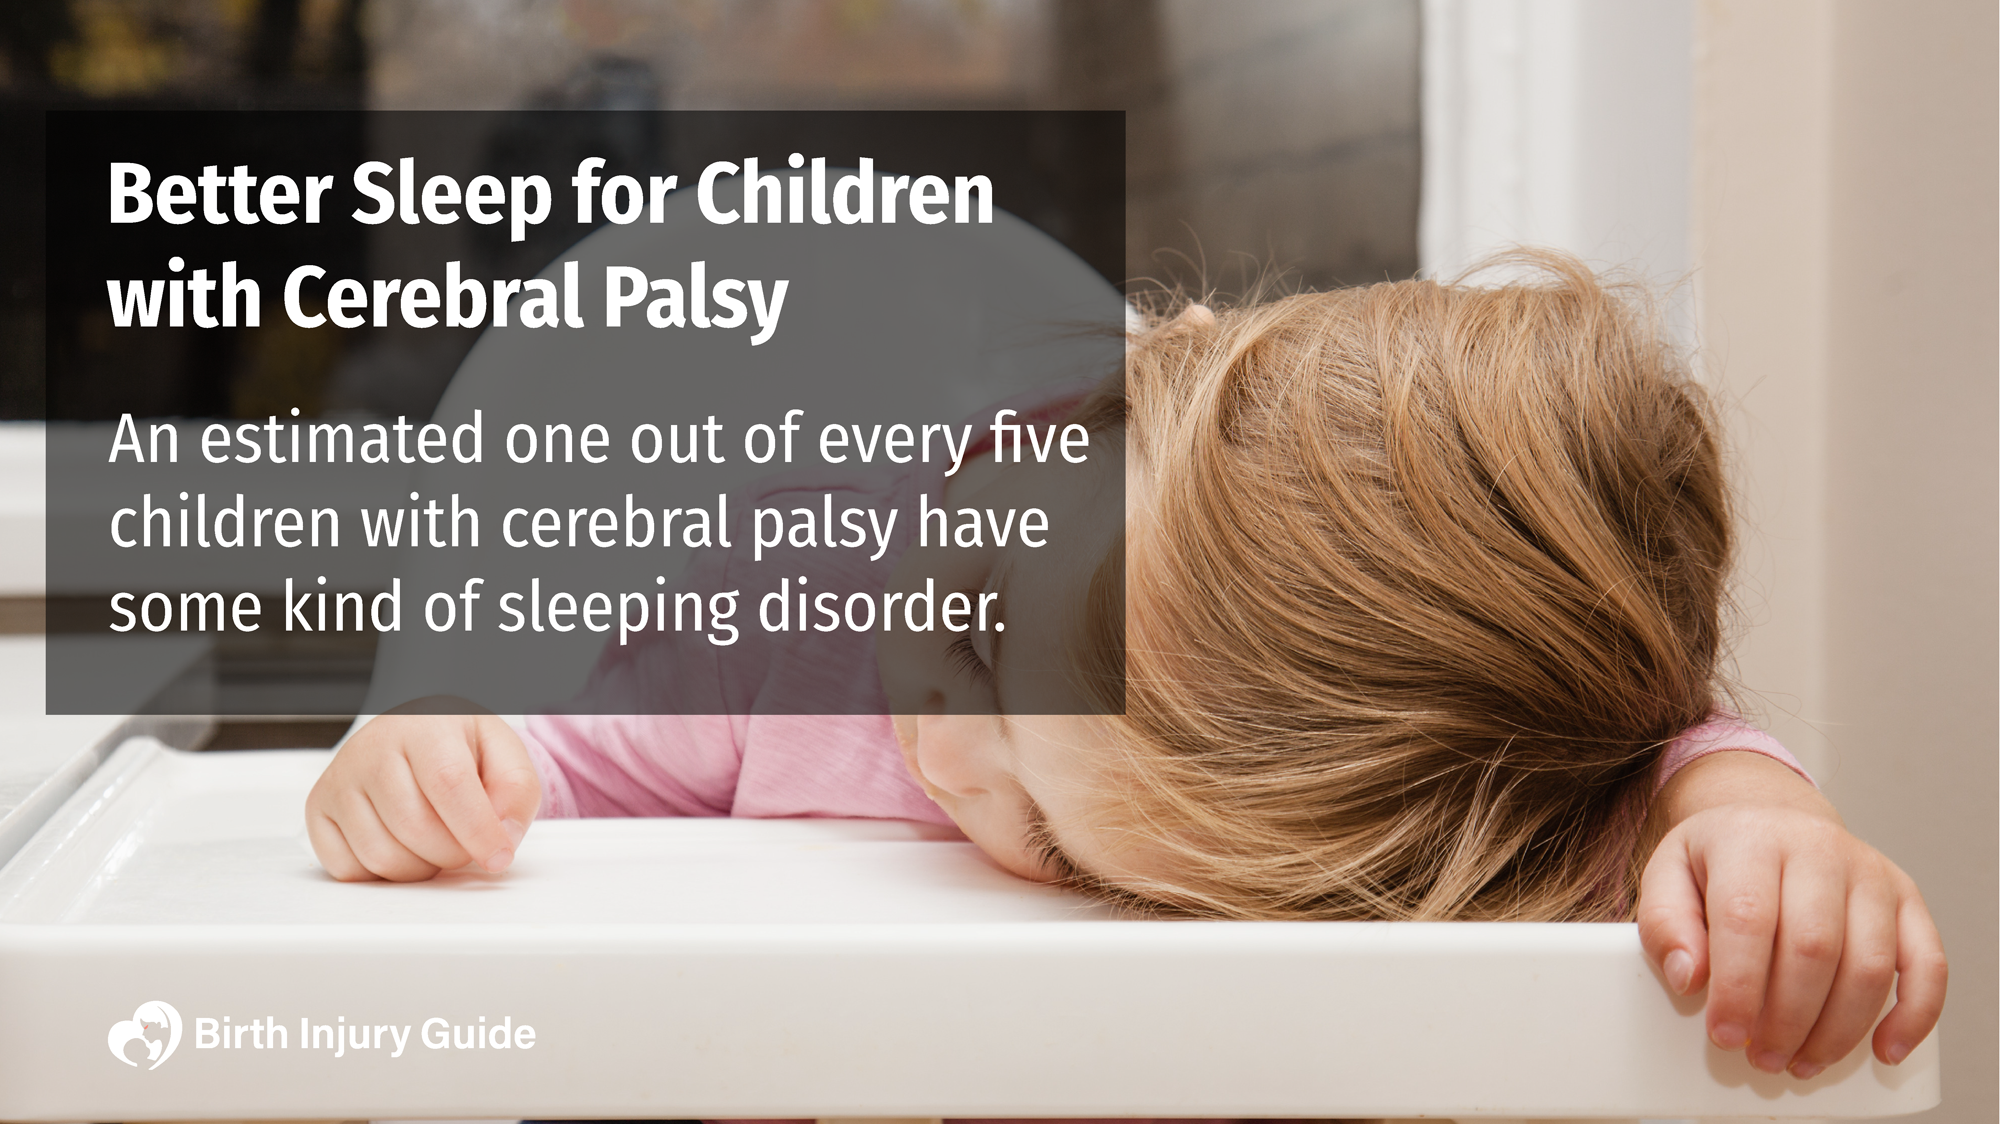 Better Sleep for Children with Cerebral Palsy